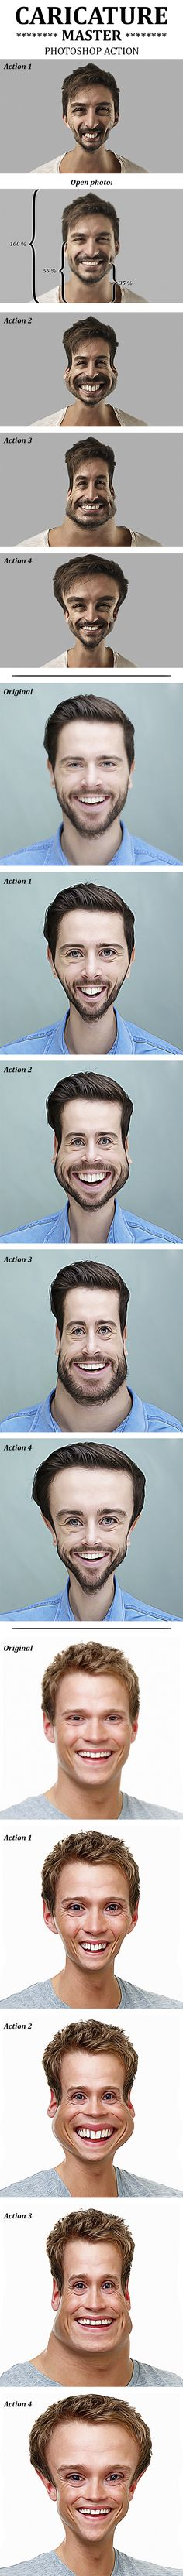 #Caricature Master Photoshop Action - #Actions #PSAction #Photoshop #PS #Graphicriver #PhotoEffects #Digitalart #Design #paint #painting #oilpaint